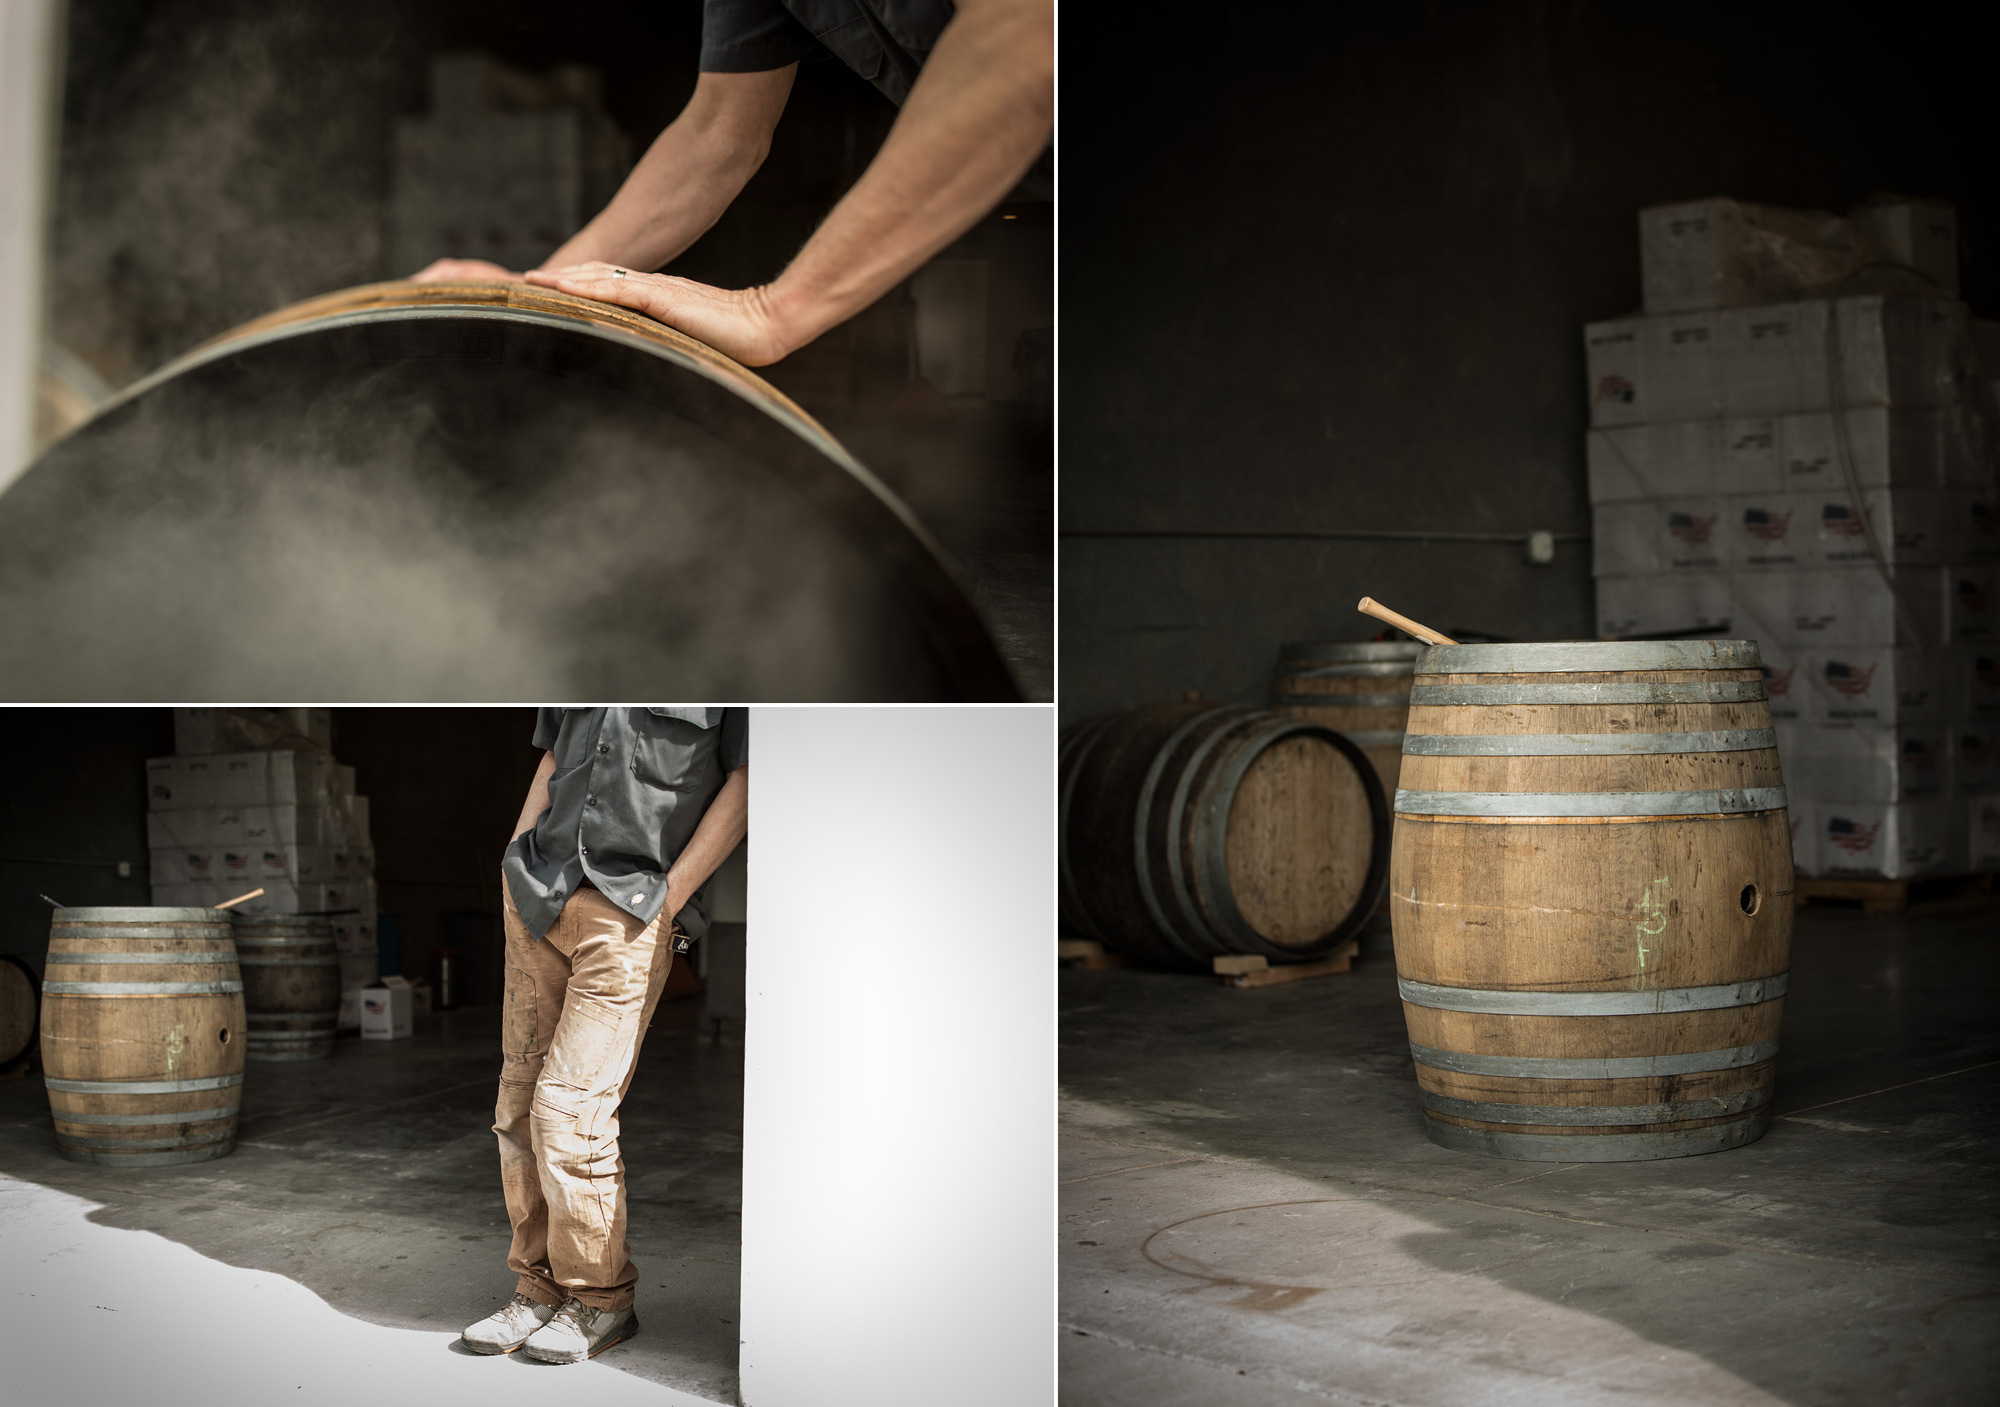 Beehive Distilling Small Batch Craft Gin Salt Lake City Utah 1